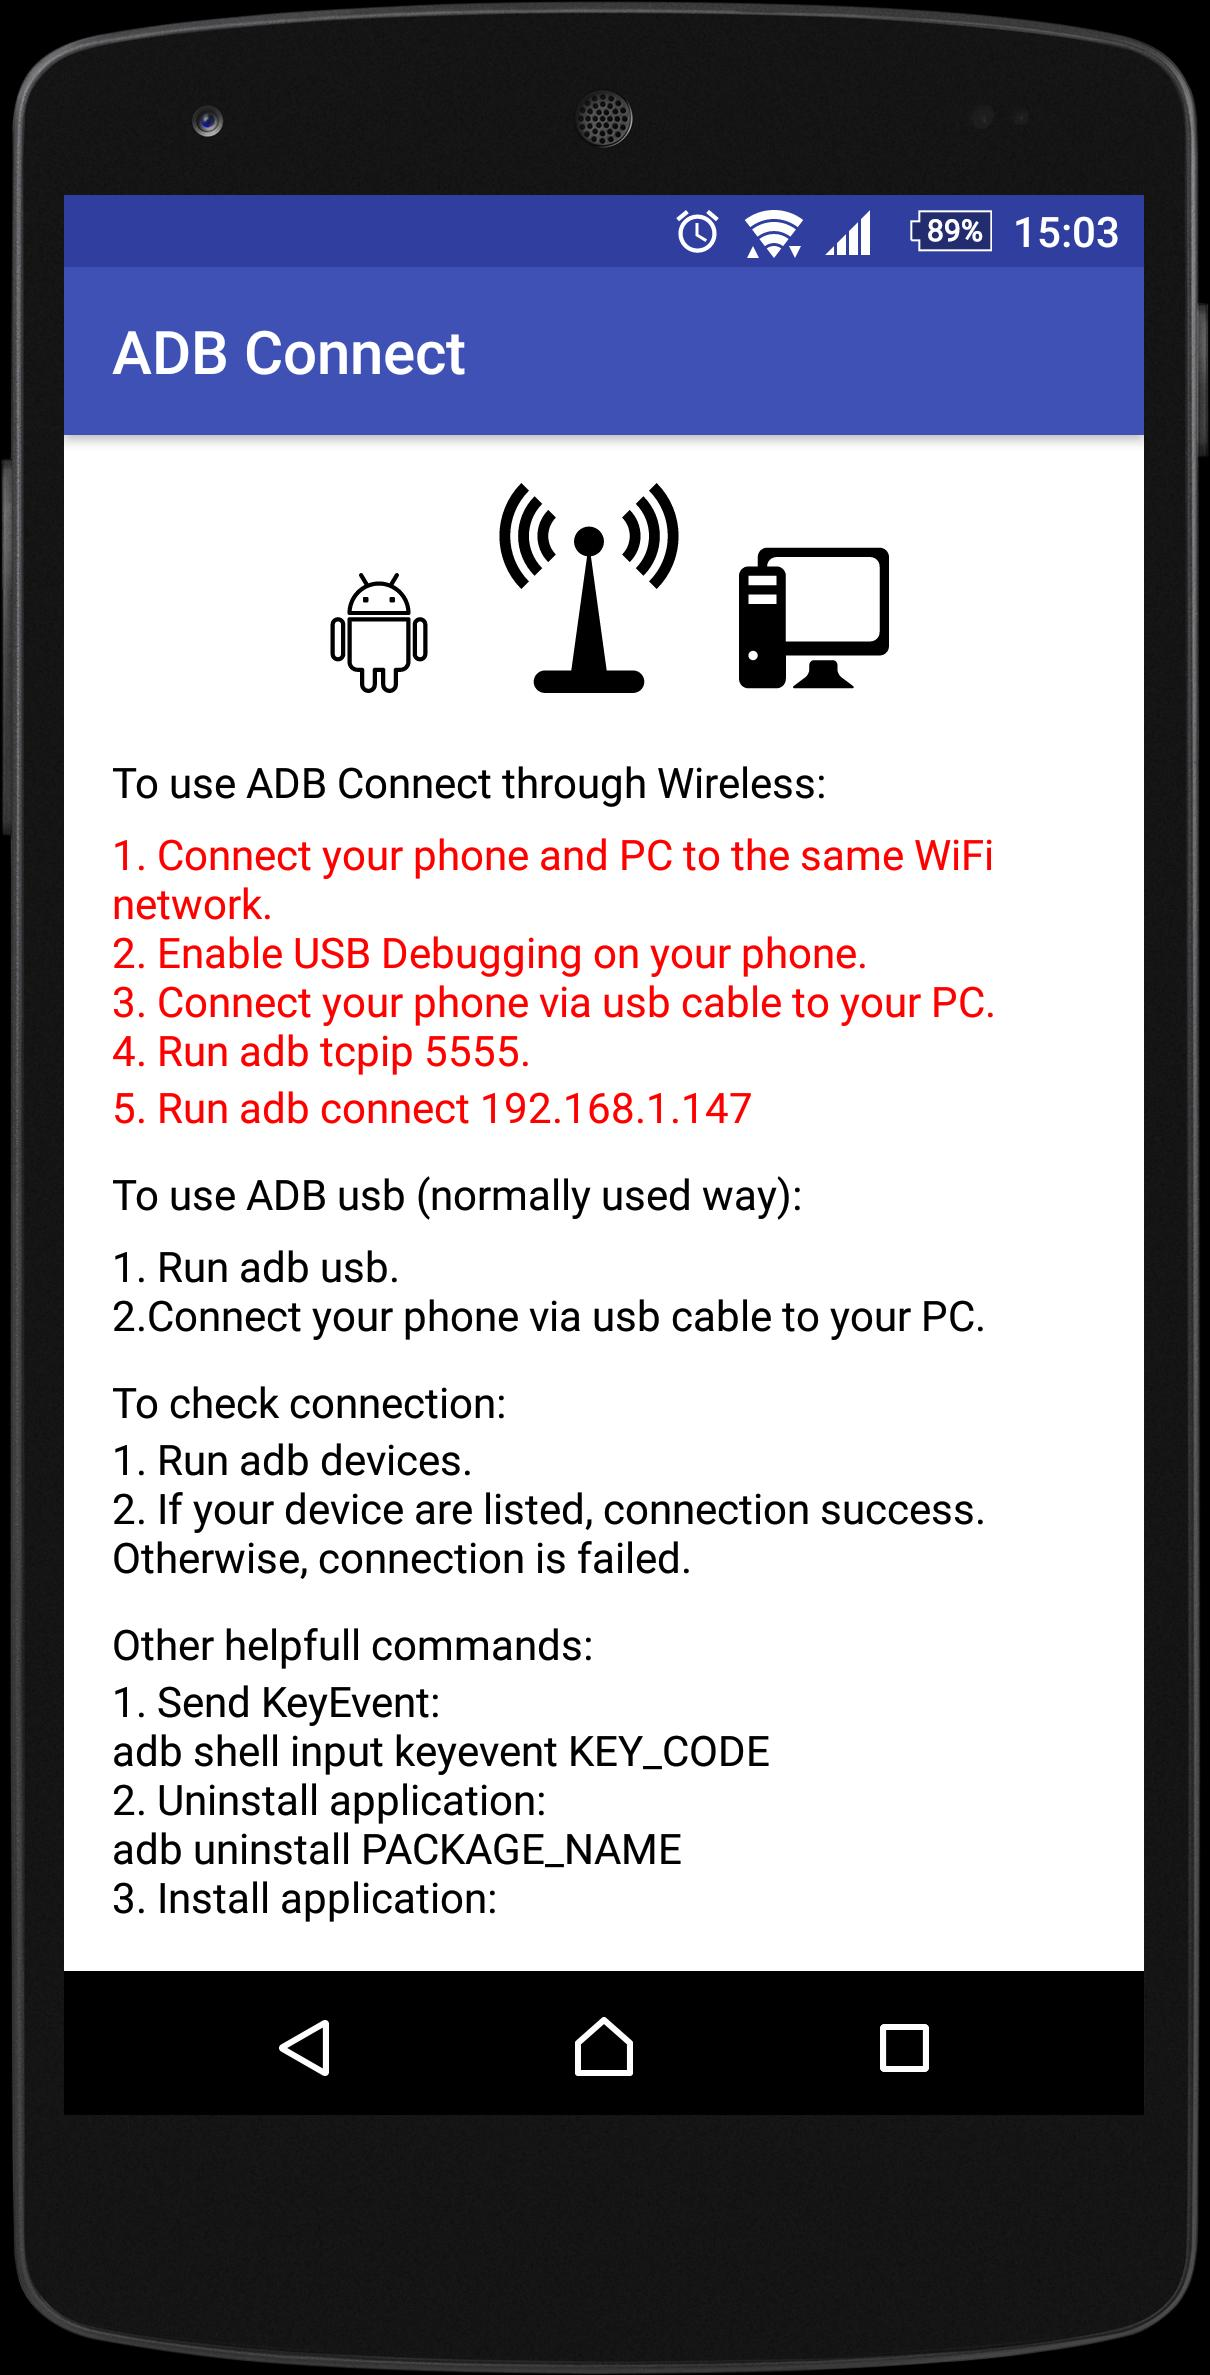 ADB Connect (No Root) cho Android - Tải về APK